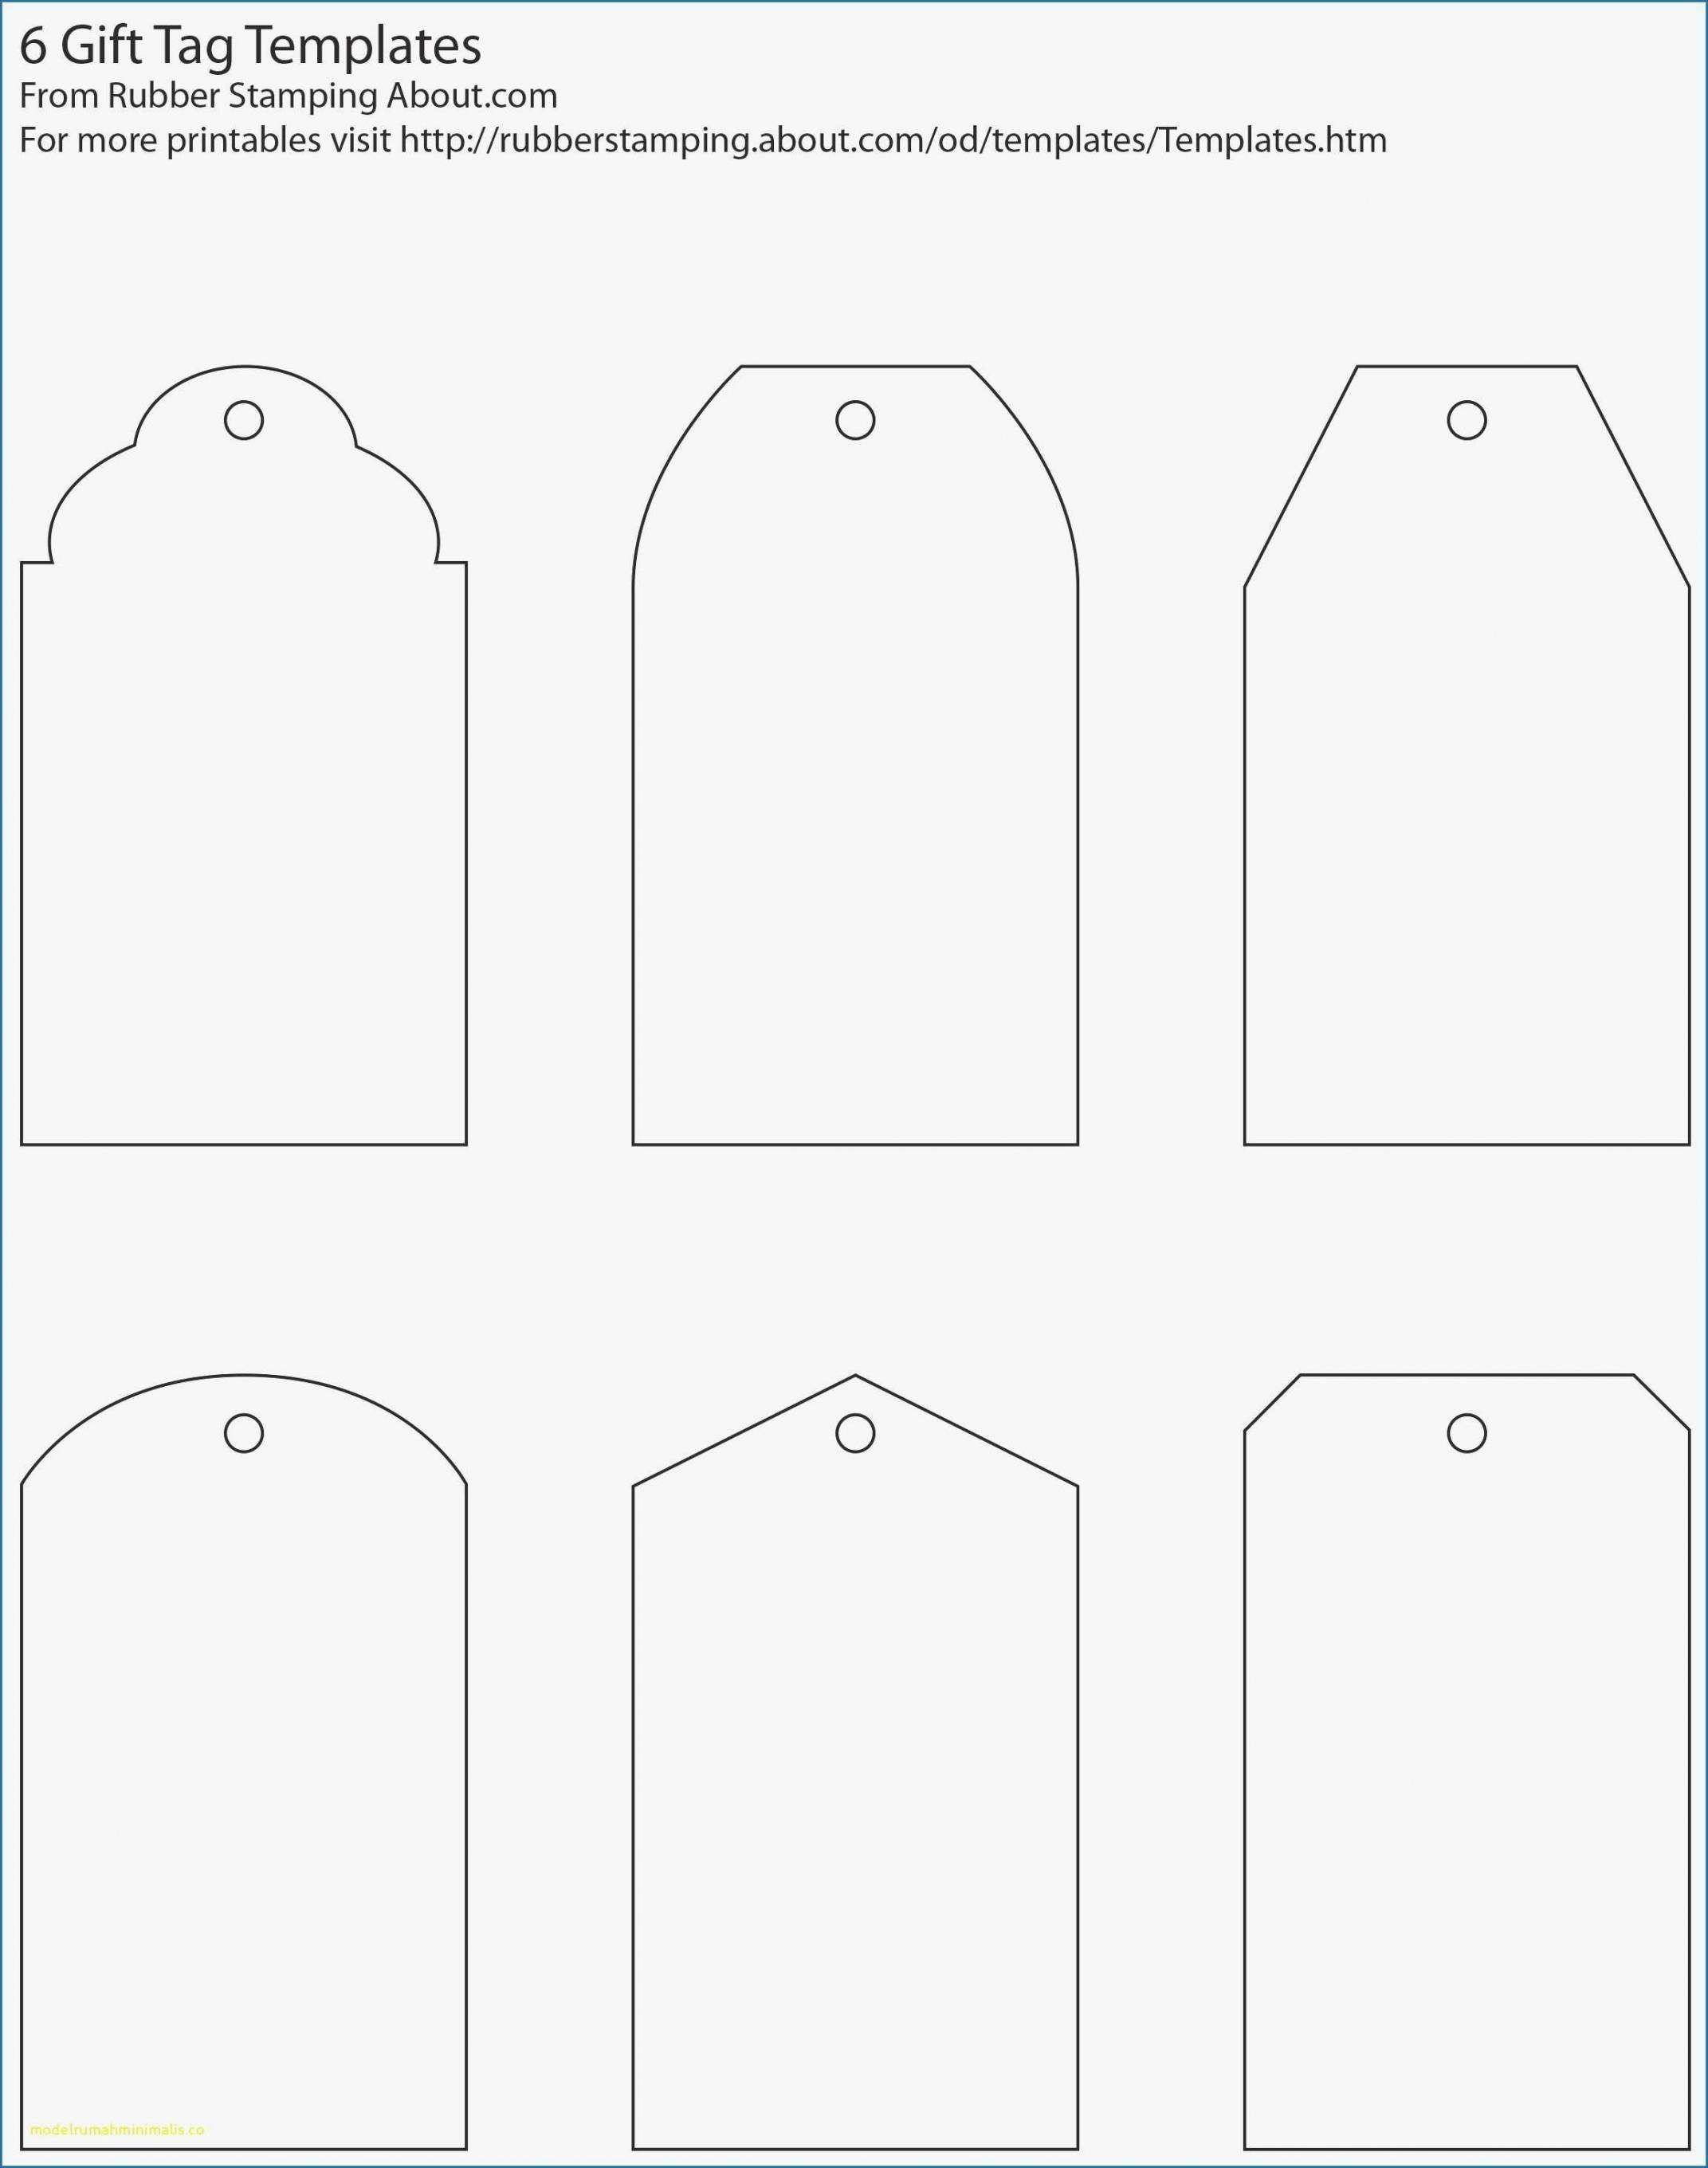 21 Adding Place Card Template Word Christmas For Free with Place With Free Gift Tag Templates For Word